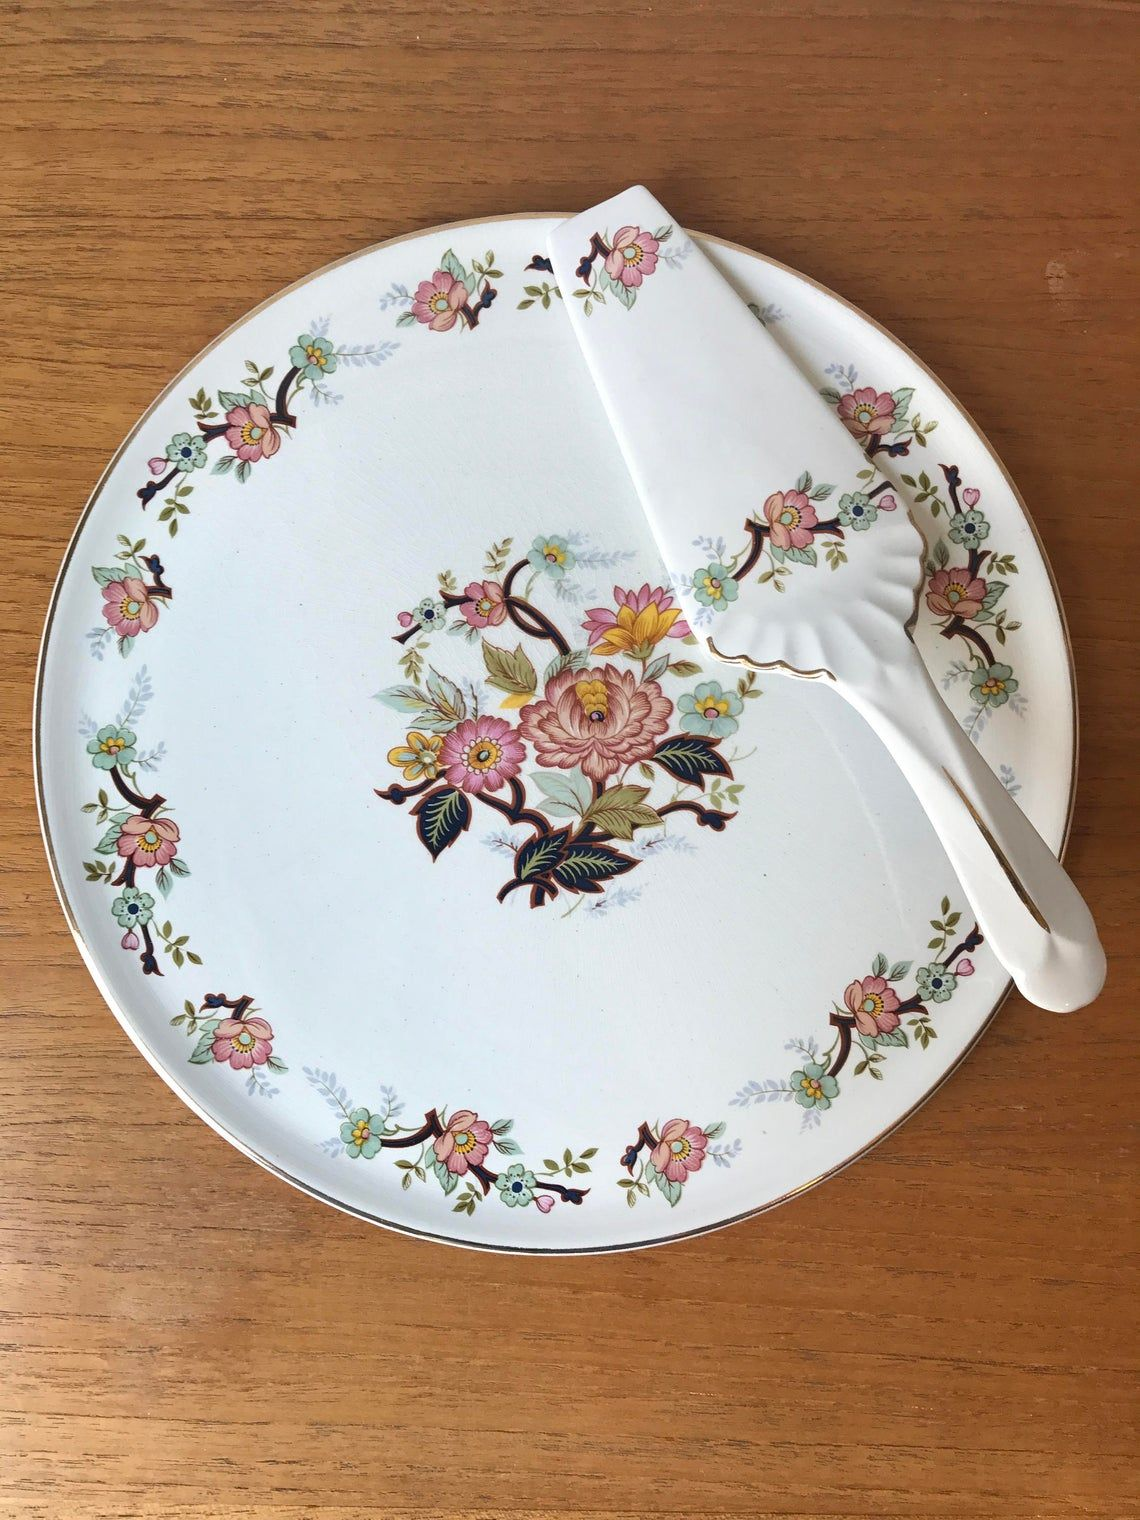 H. Aynsley and Co. Staffordshire England Cake Plate, Large Circle Serving Platter Serving Utensil, Pink, Aqua, Blue Green Flowers & Leaves